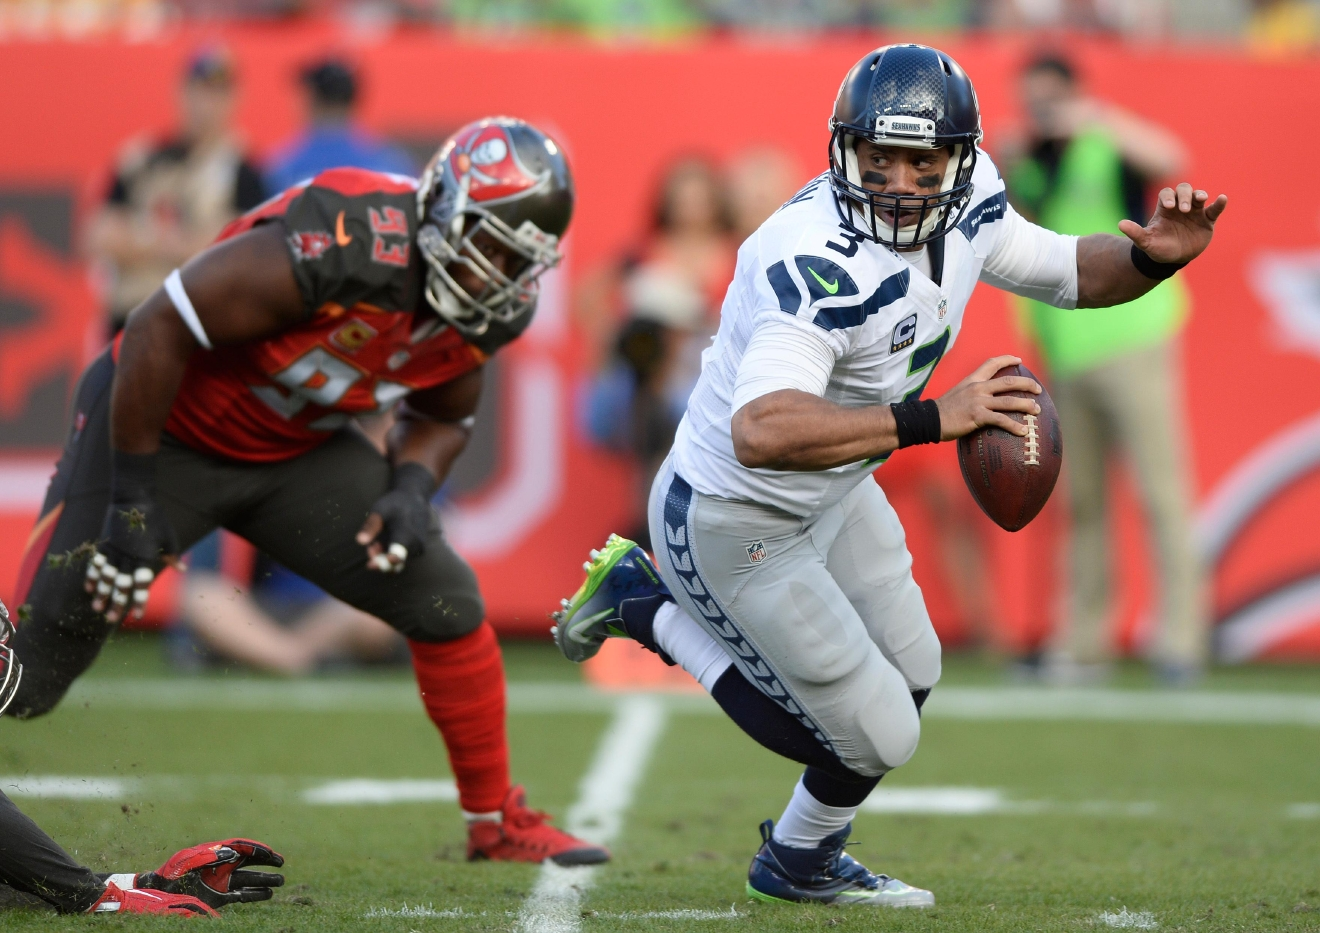 Seattle Seahawks quarterback Russell Wilson (3) scrambles away from Tampa Bay Buccaneers defensive tackle Gerald McCoy (93) during the first quarter of an NFL football game Sunday, Nov. 27, 2016, in Tampa, Fla. (AP Photo/Jason Behnken)